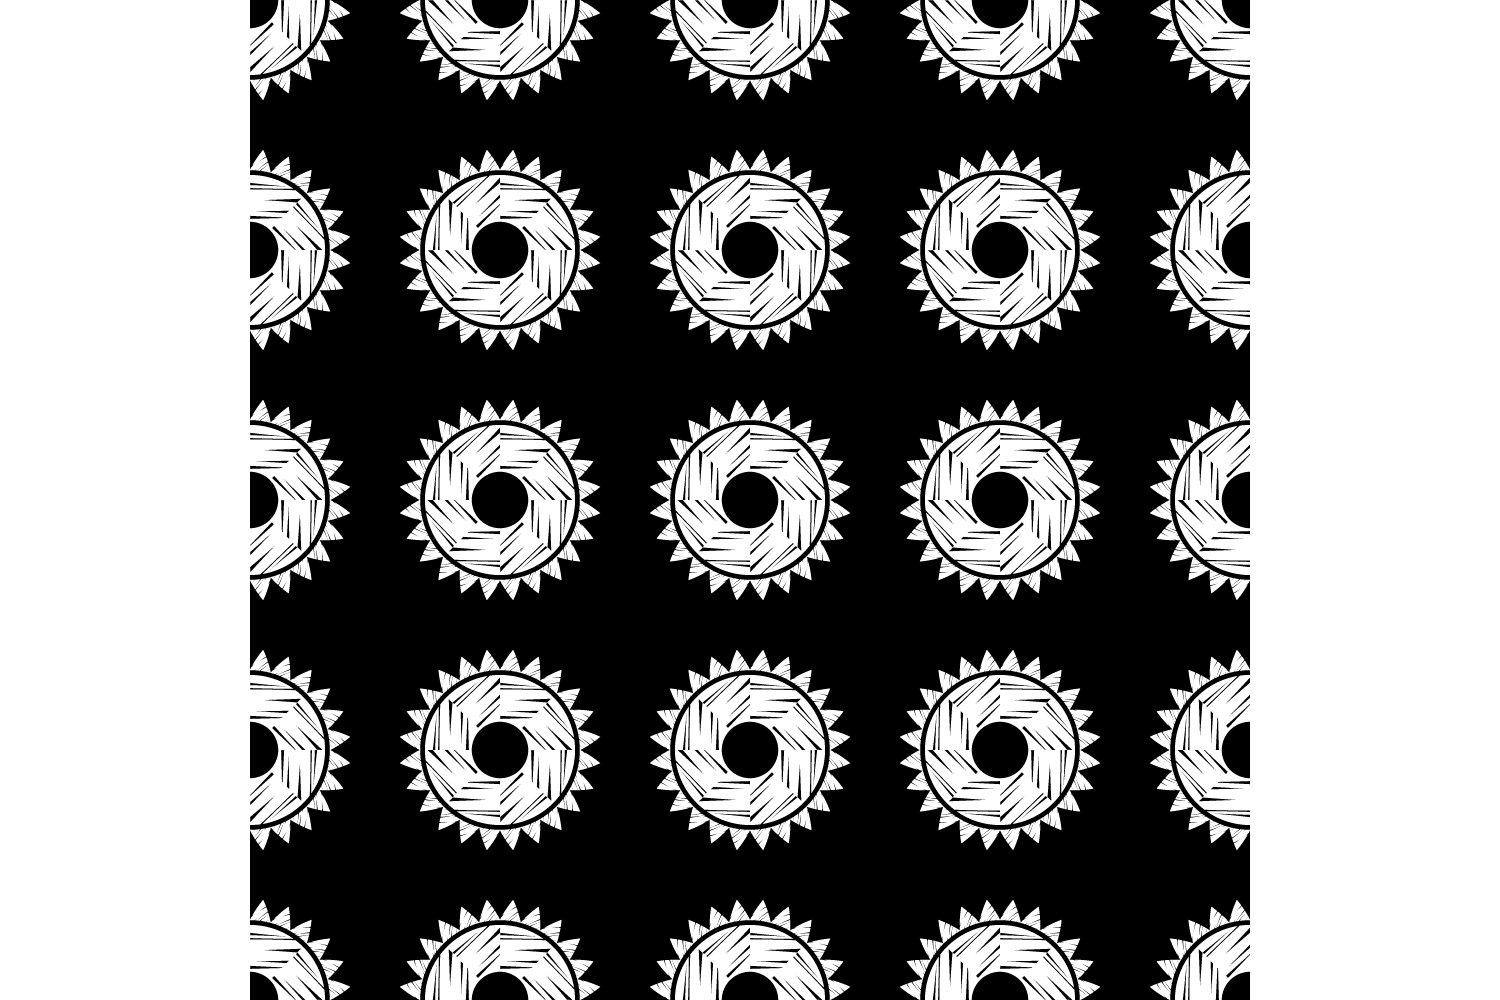 Polka dot ethnic ornament. Set of 10 seamless patterns. example image 9